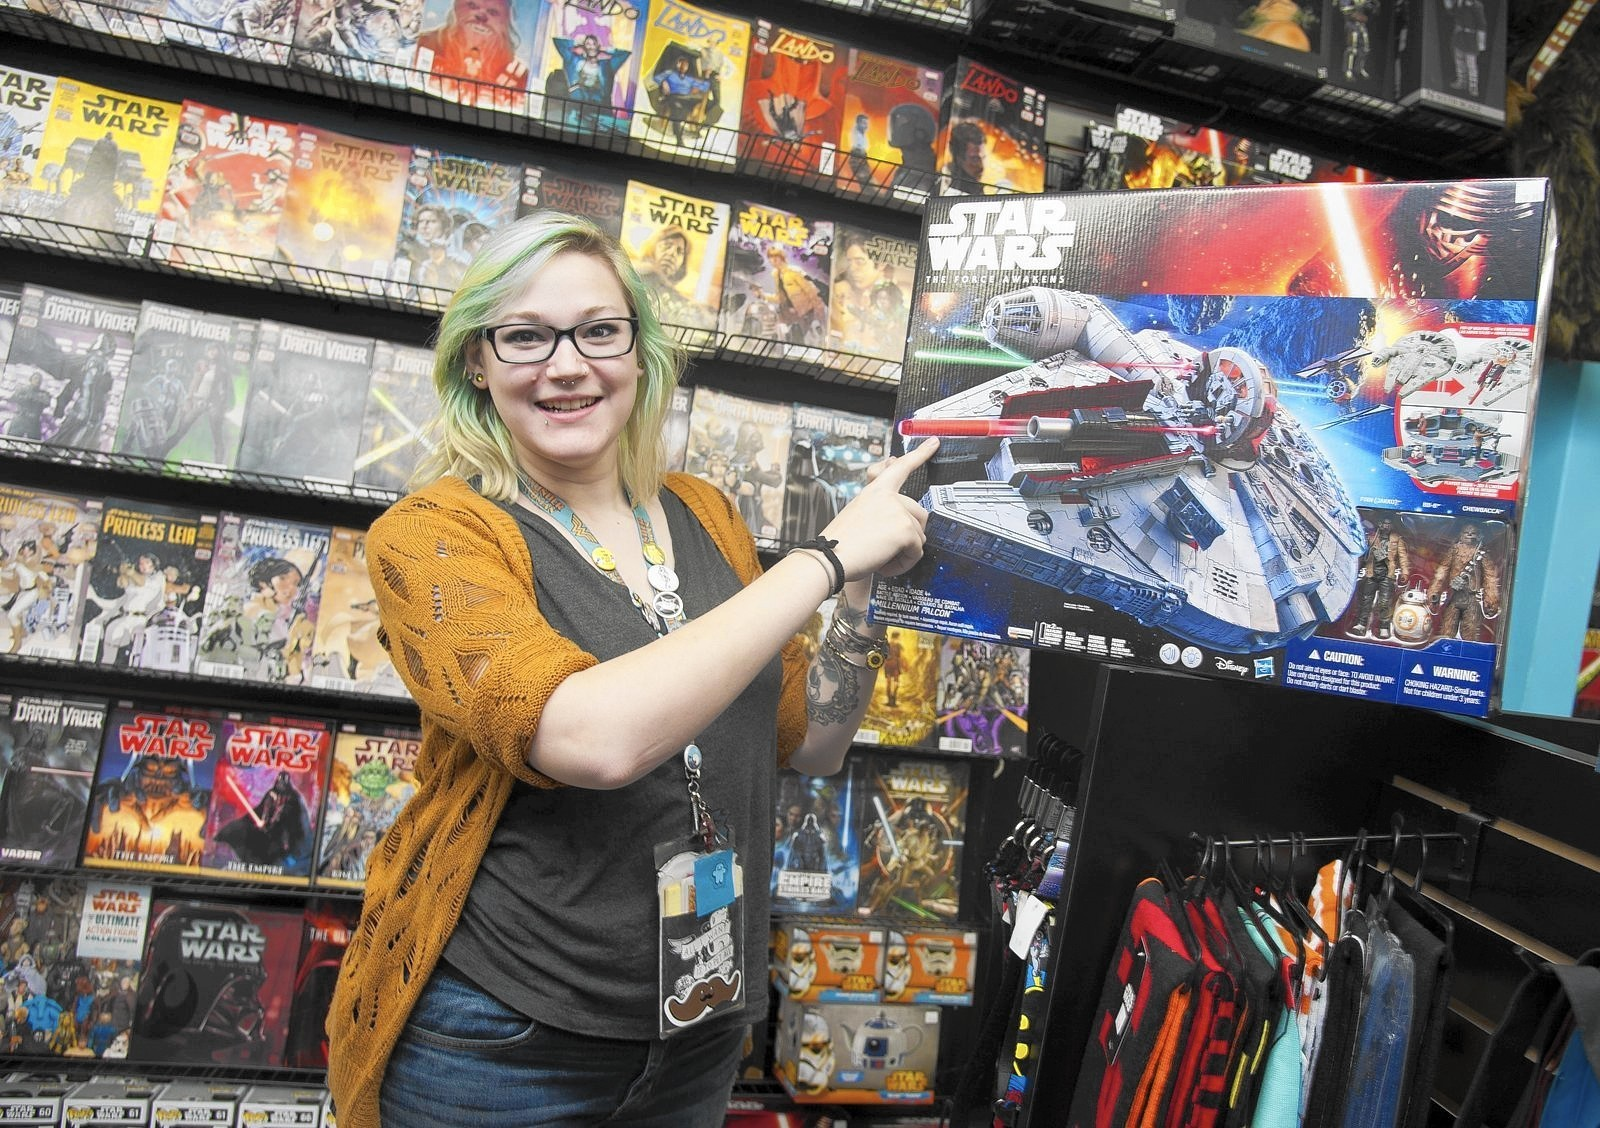 'Star Wars' fever hits Anne Arundel, highlighted by Chewbacca actor visit. '